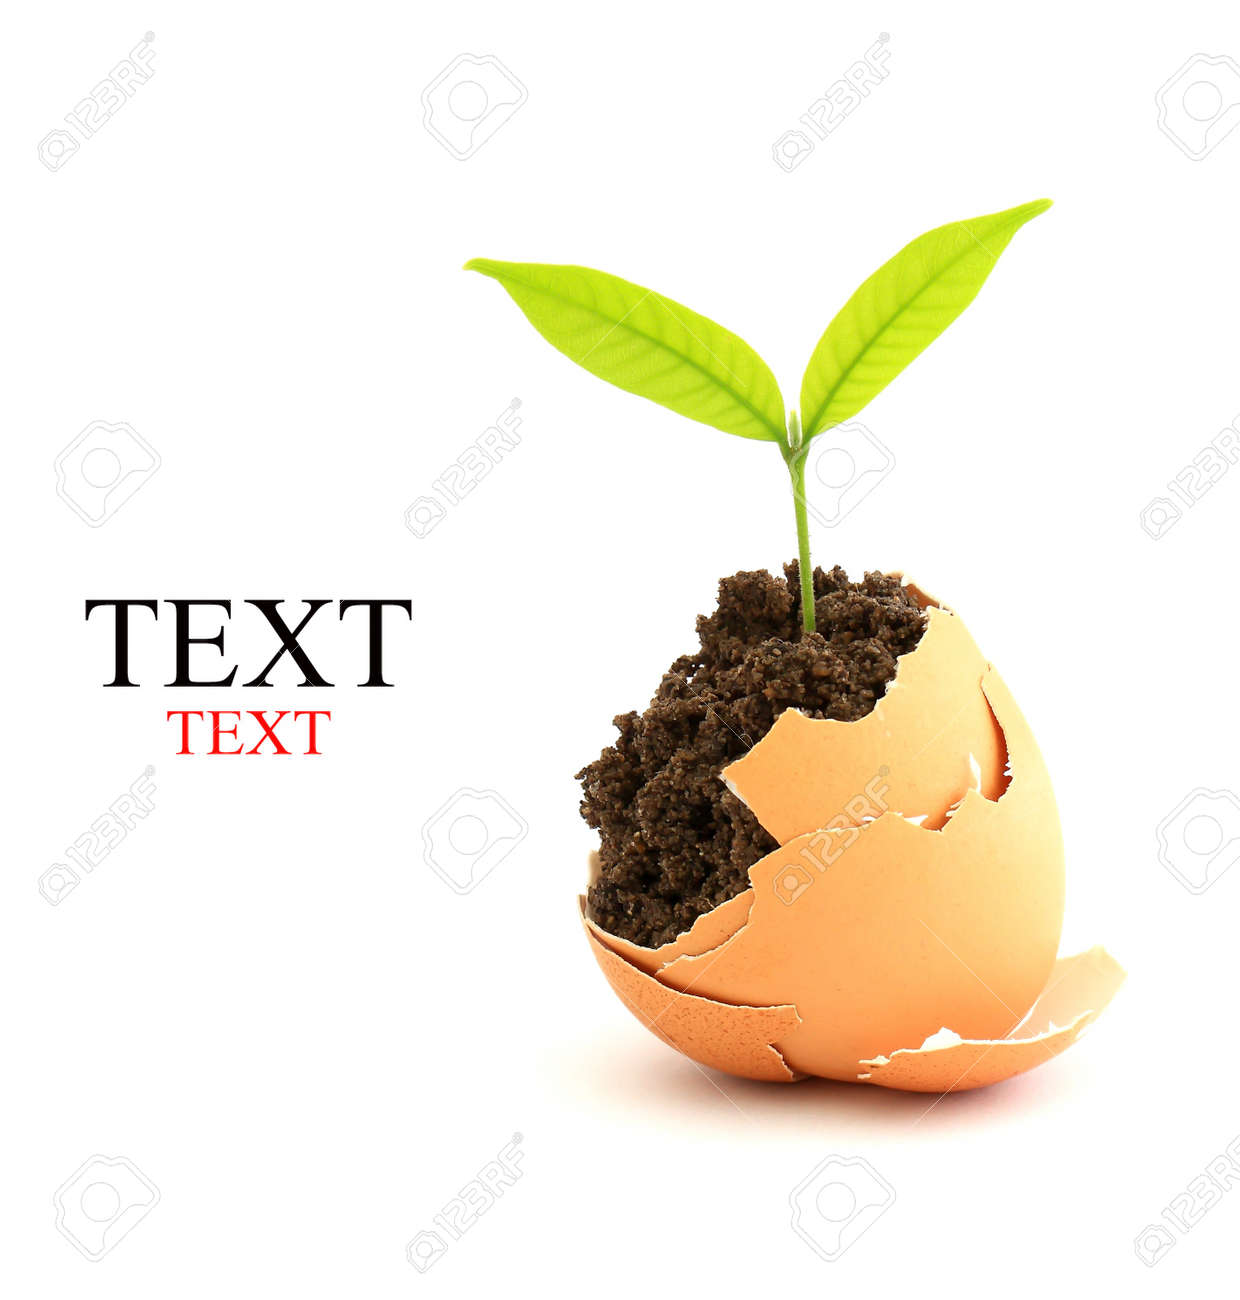 growing green plant in egg shell on white background - 9347854